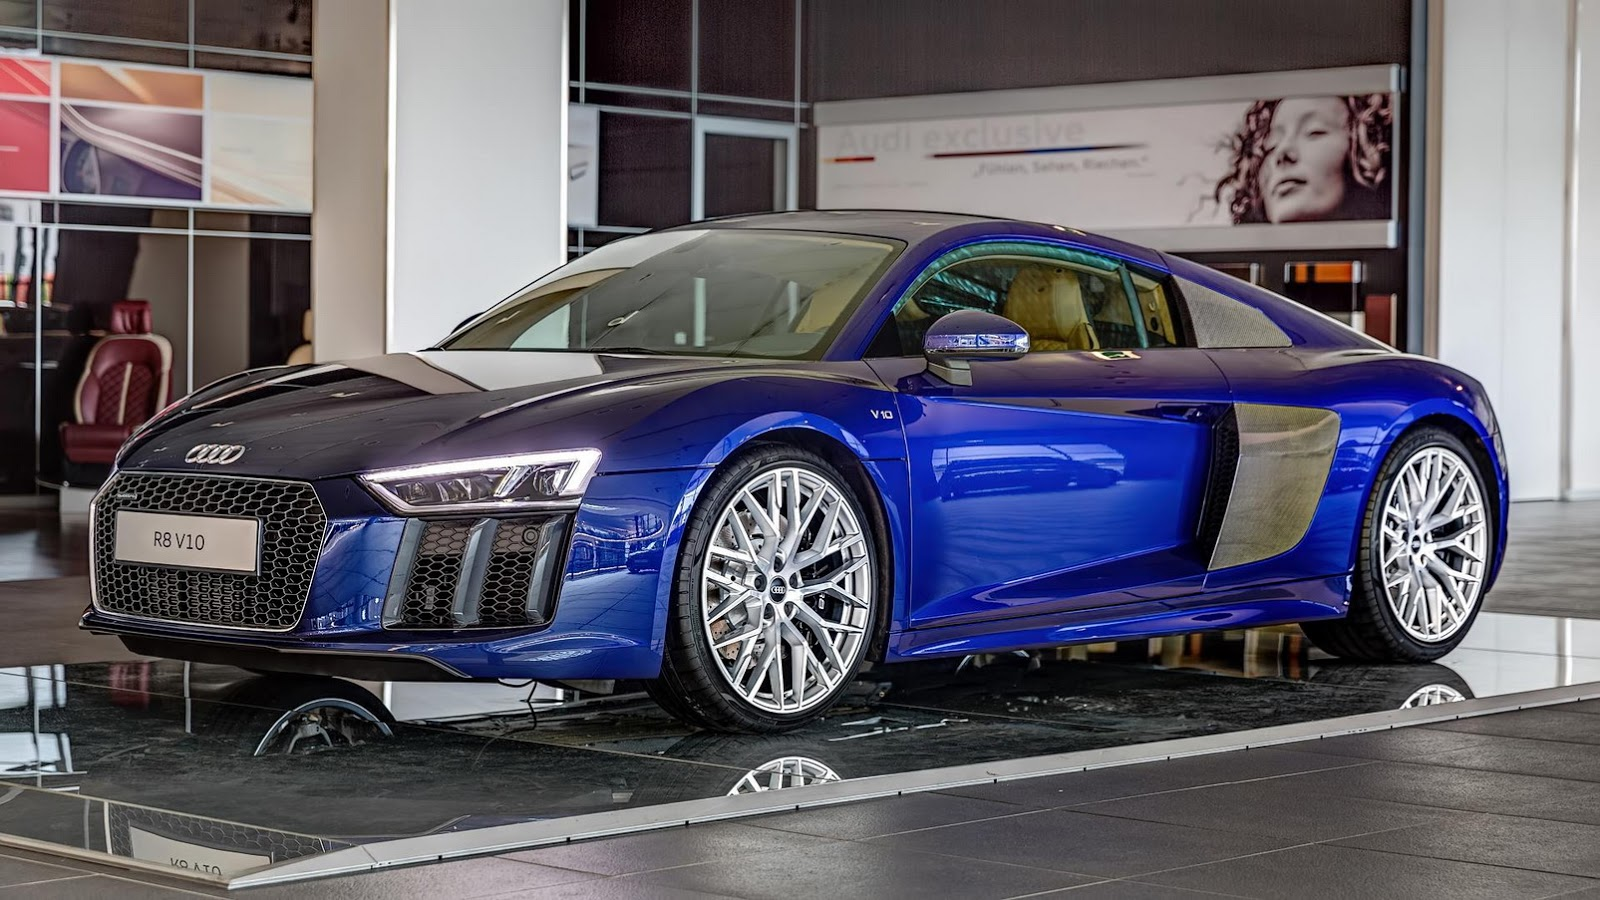 Beautiful Blue 2016 Audi R8 V10 In Germany Gtspirit